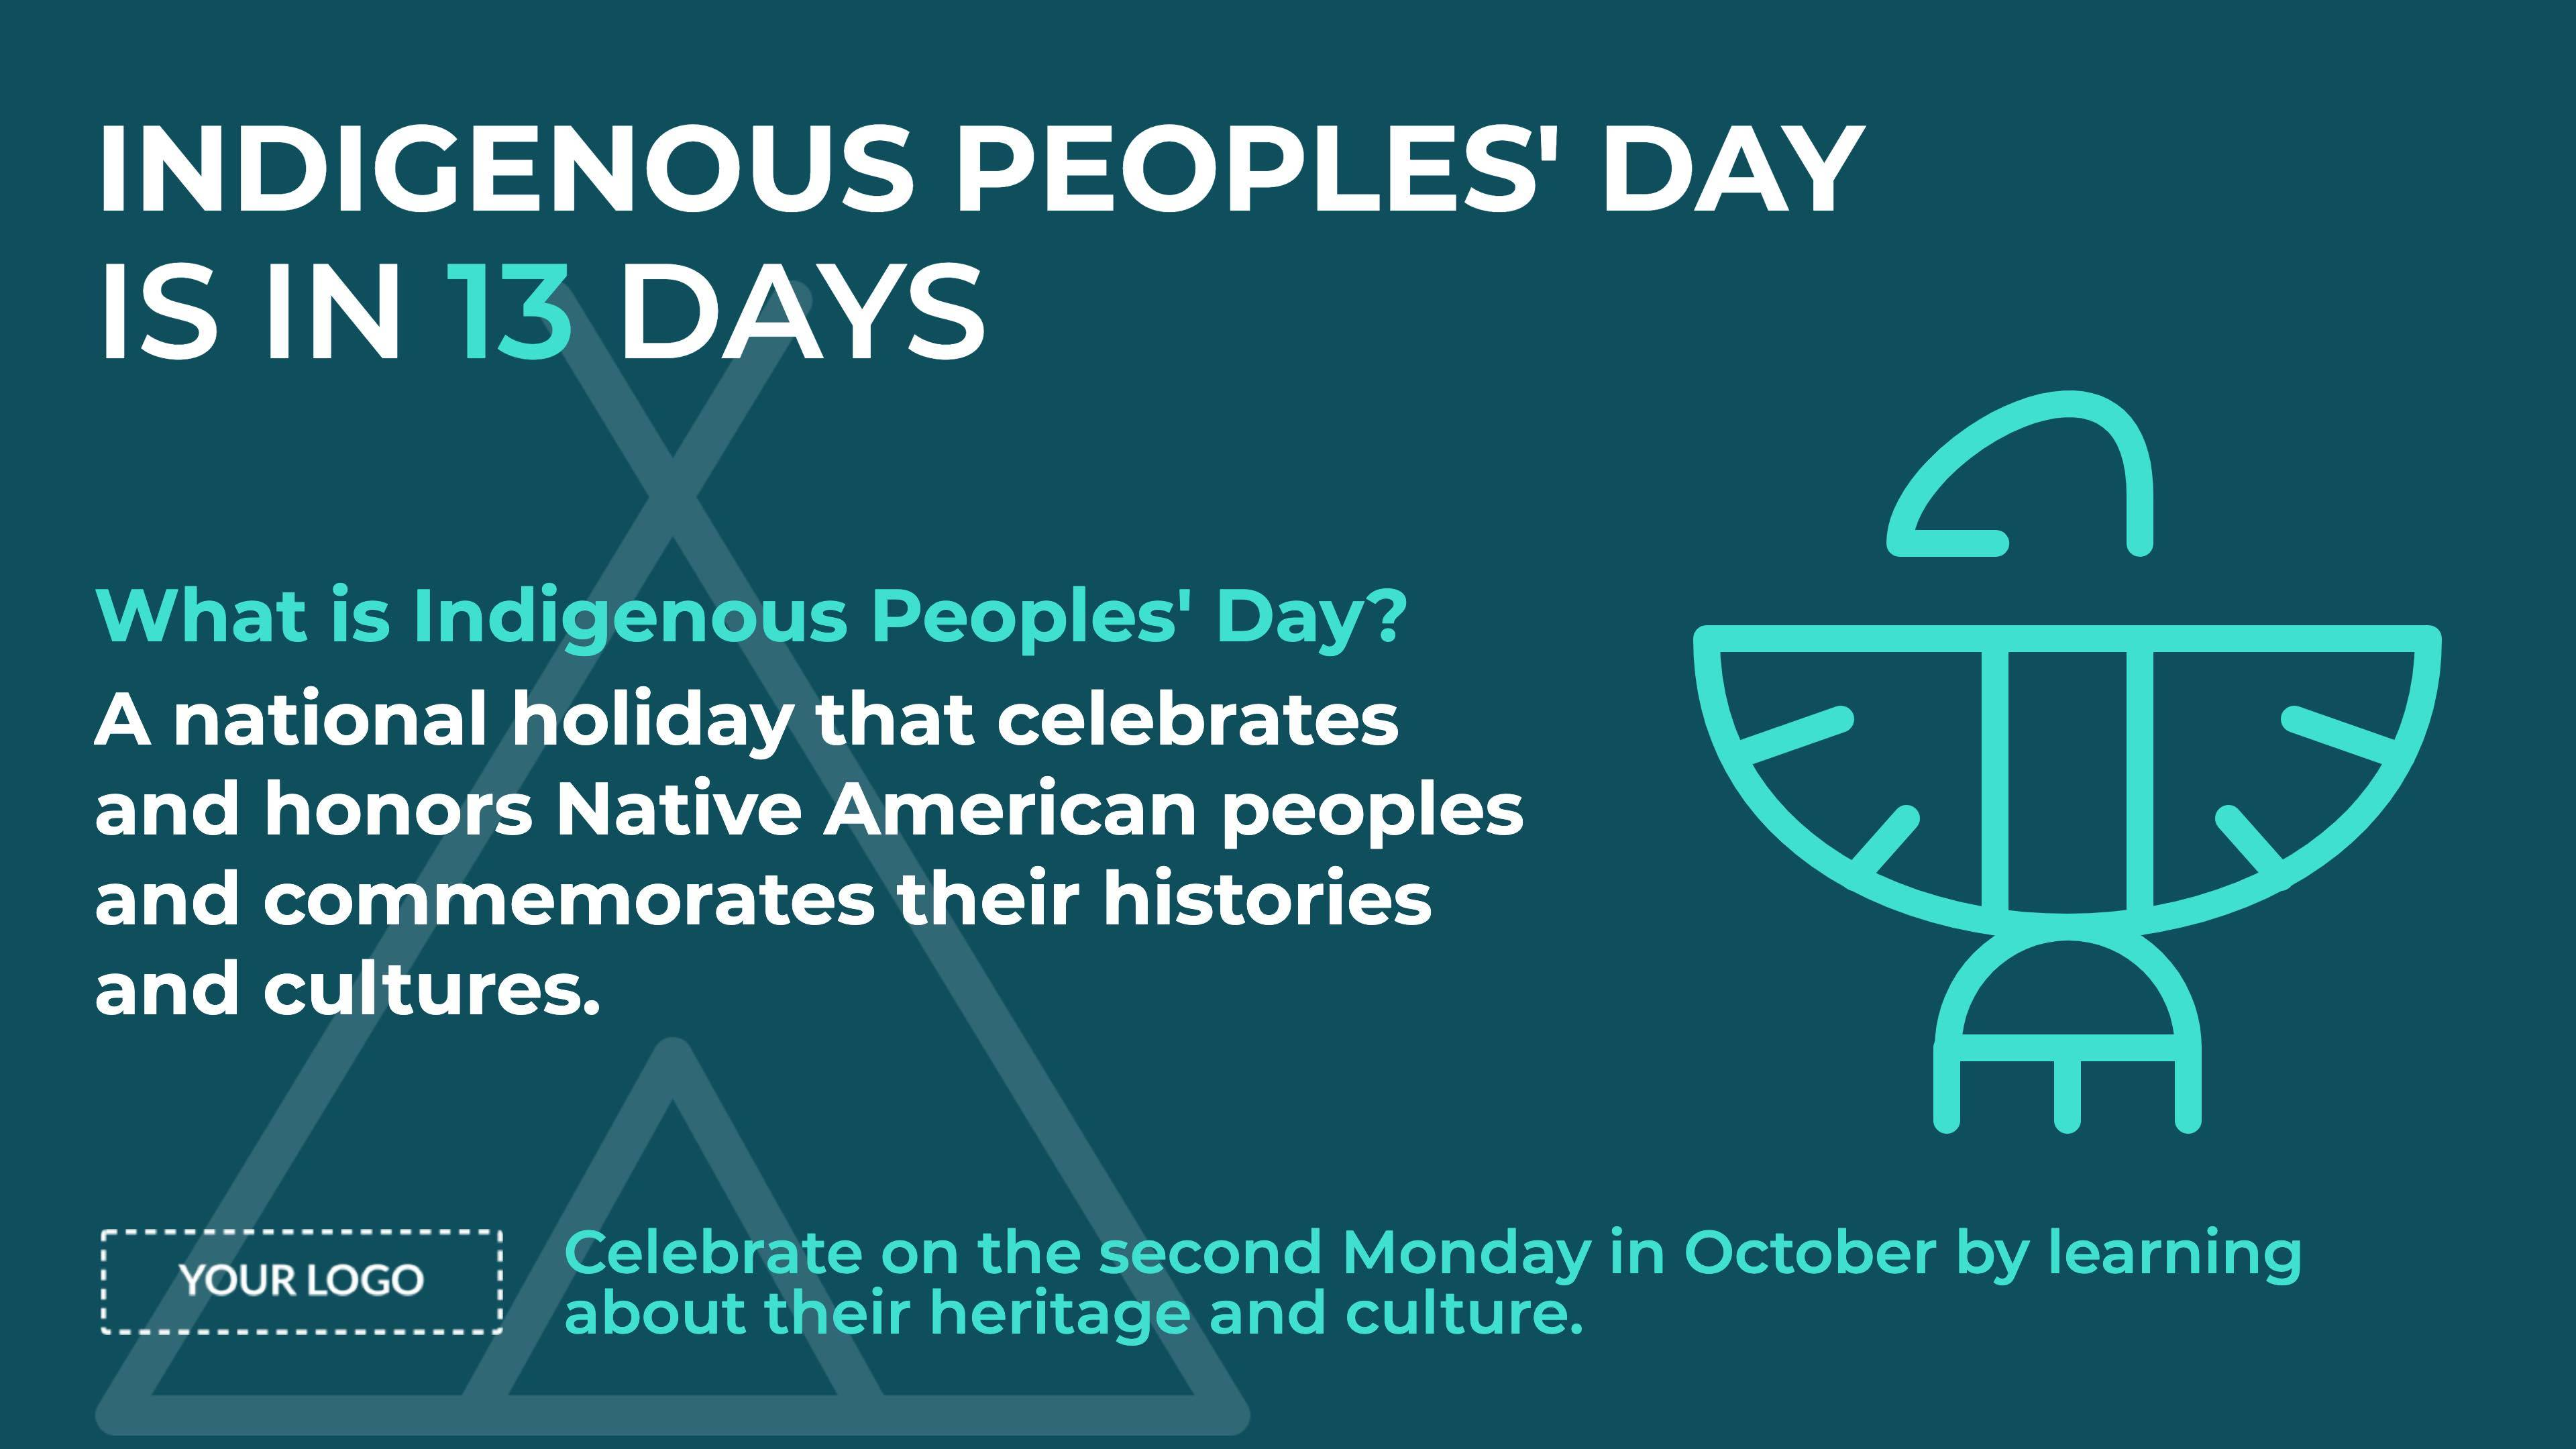 Indigenous Peoples' Day Digital Signage Template